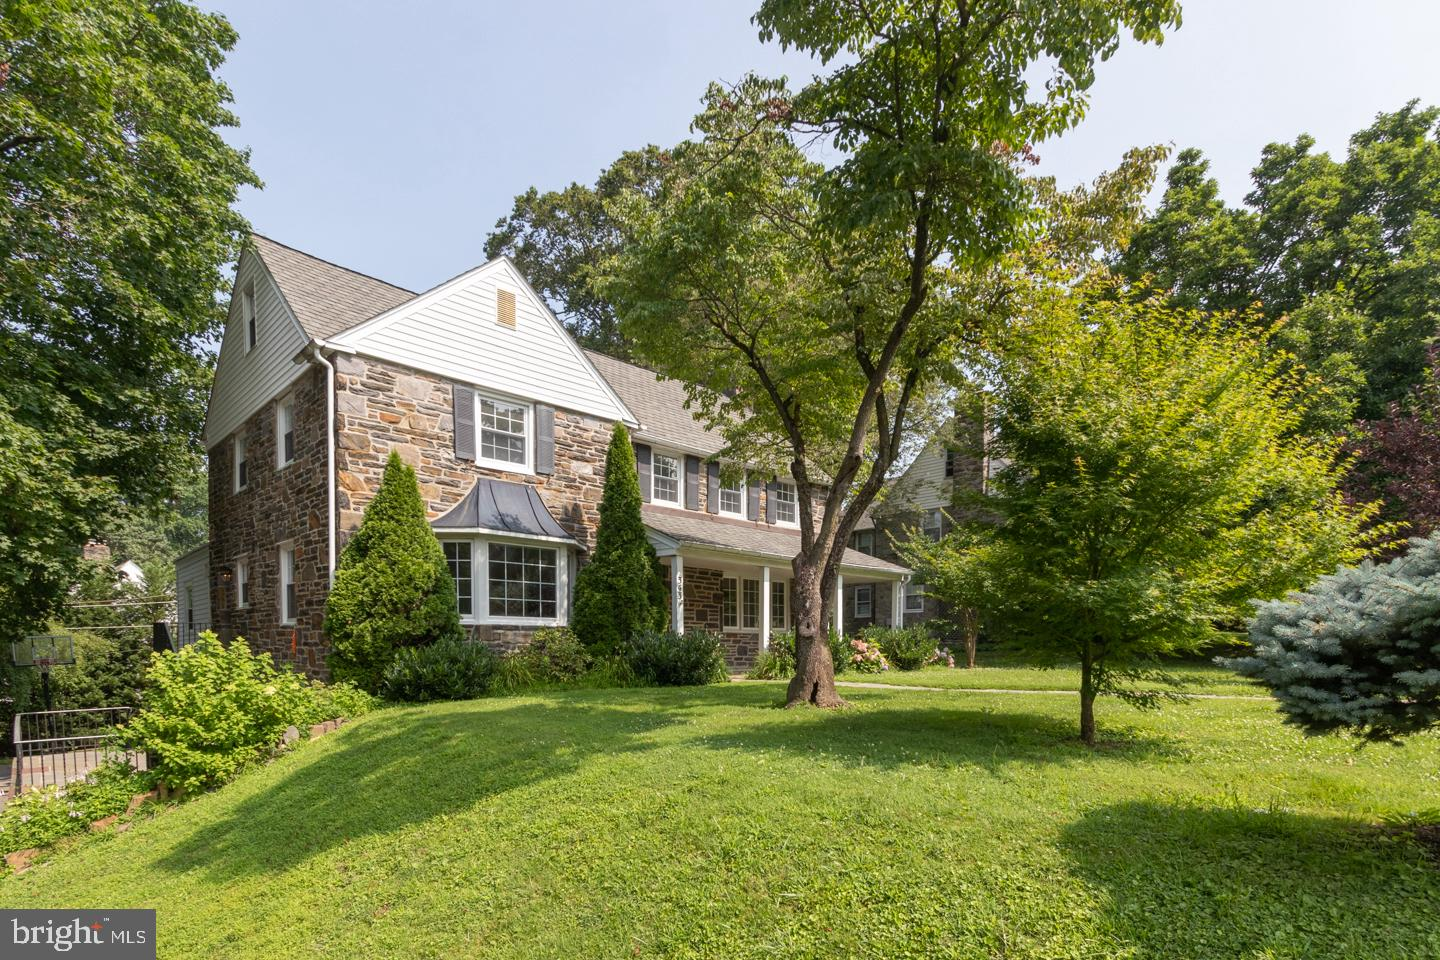 343 WINDING WAY, MERION STATION, PA 19066